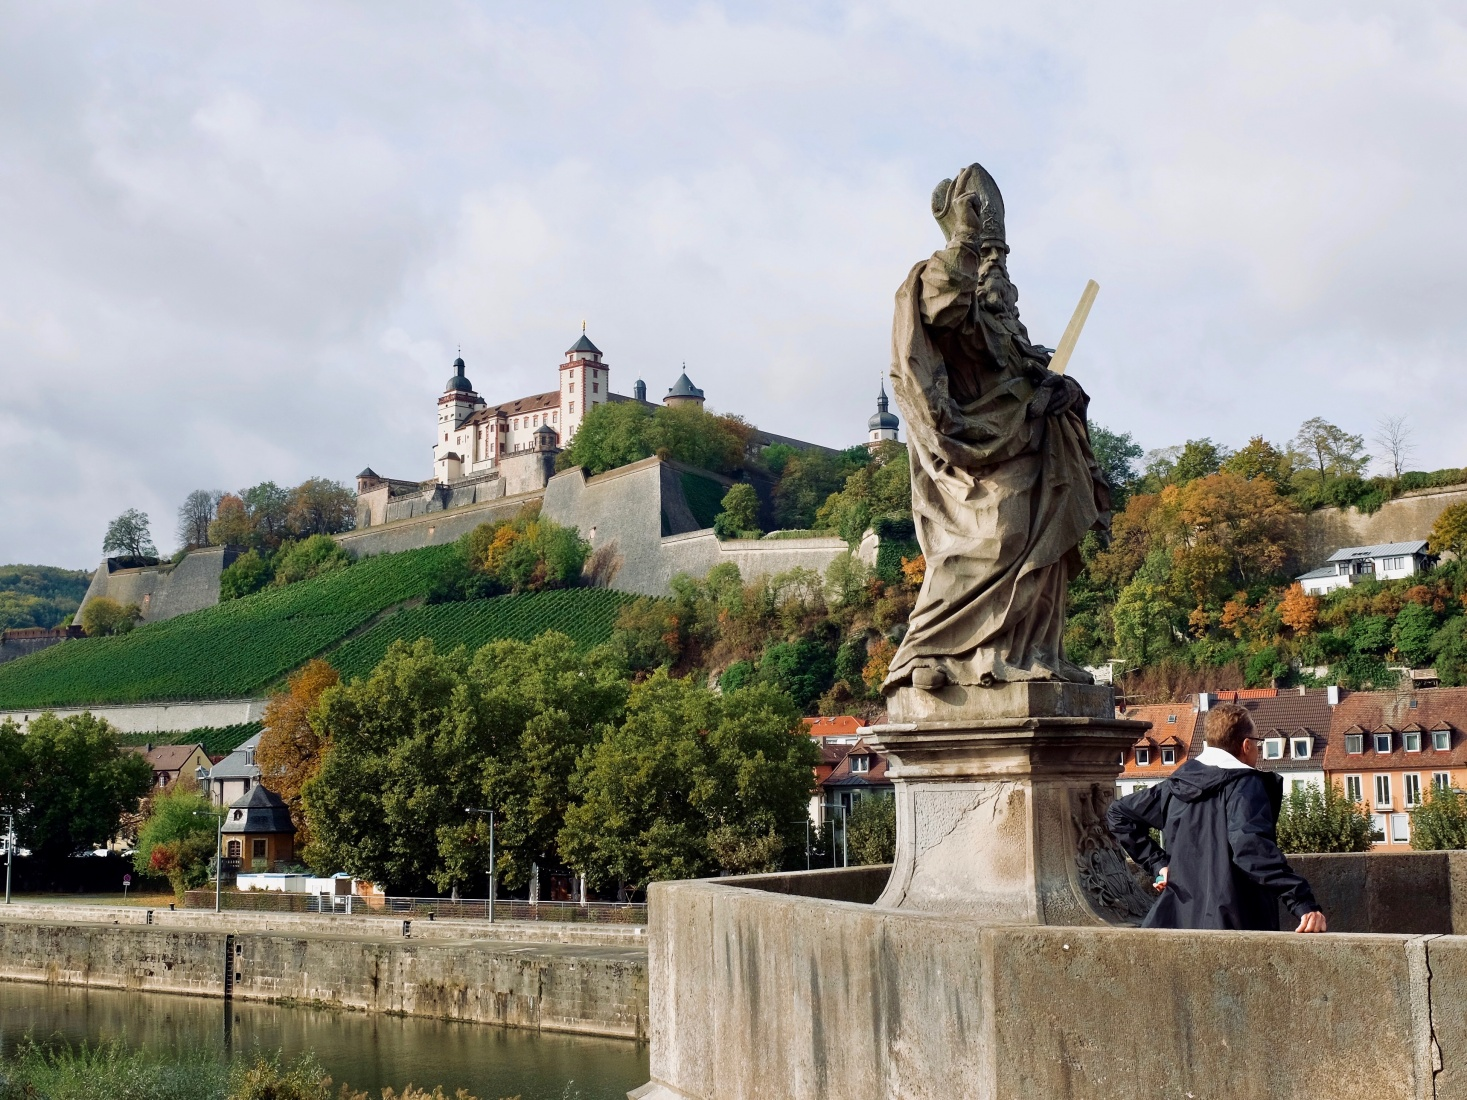 A statue on the bridge in Würzburg crossing the Main, with the ancient Marienberg fortress in the background.